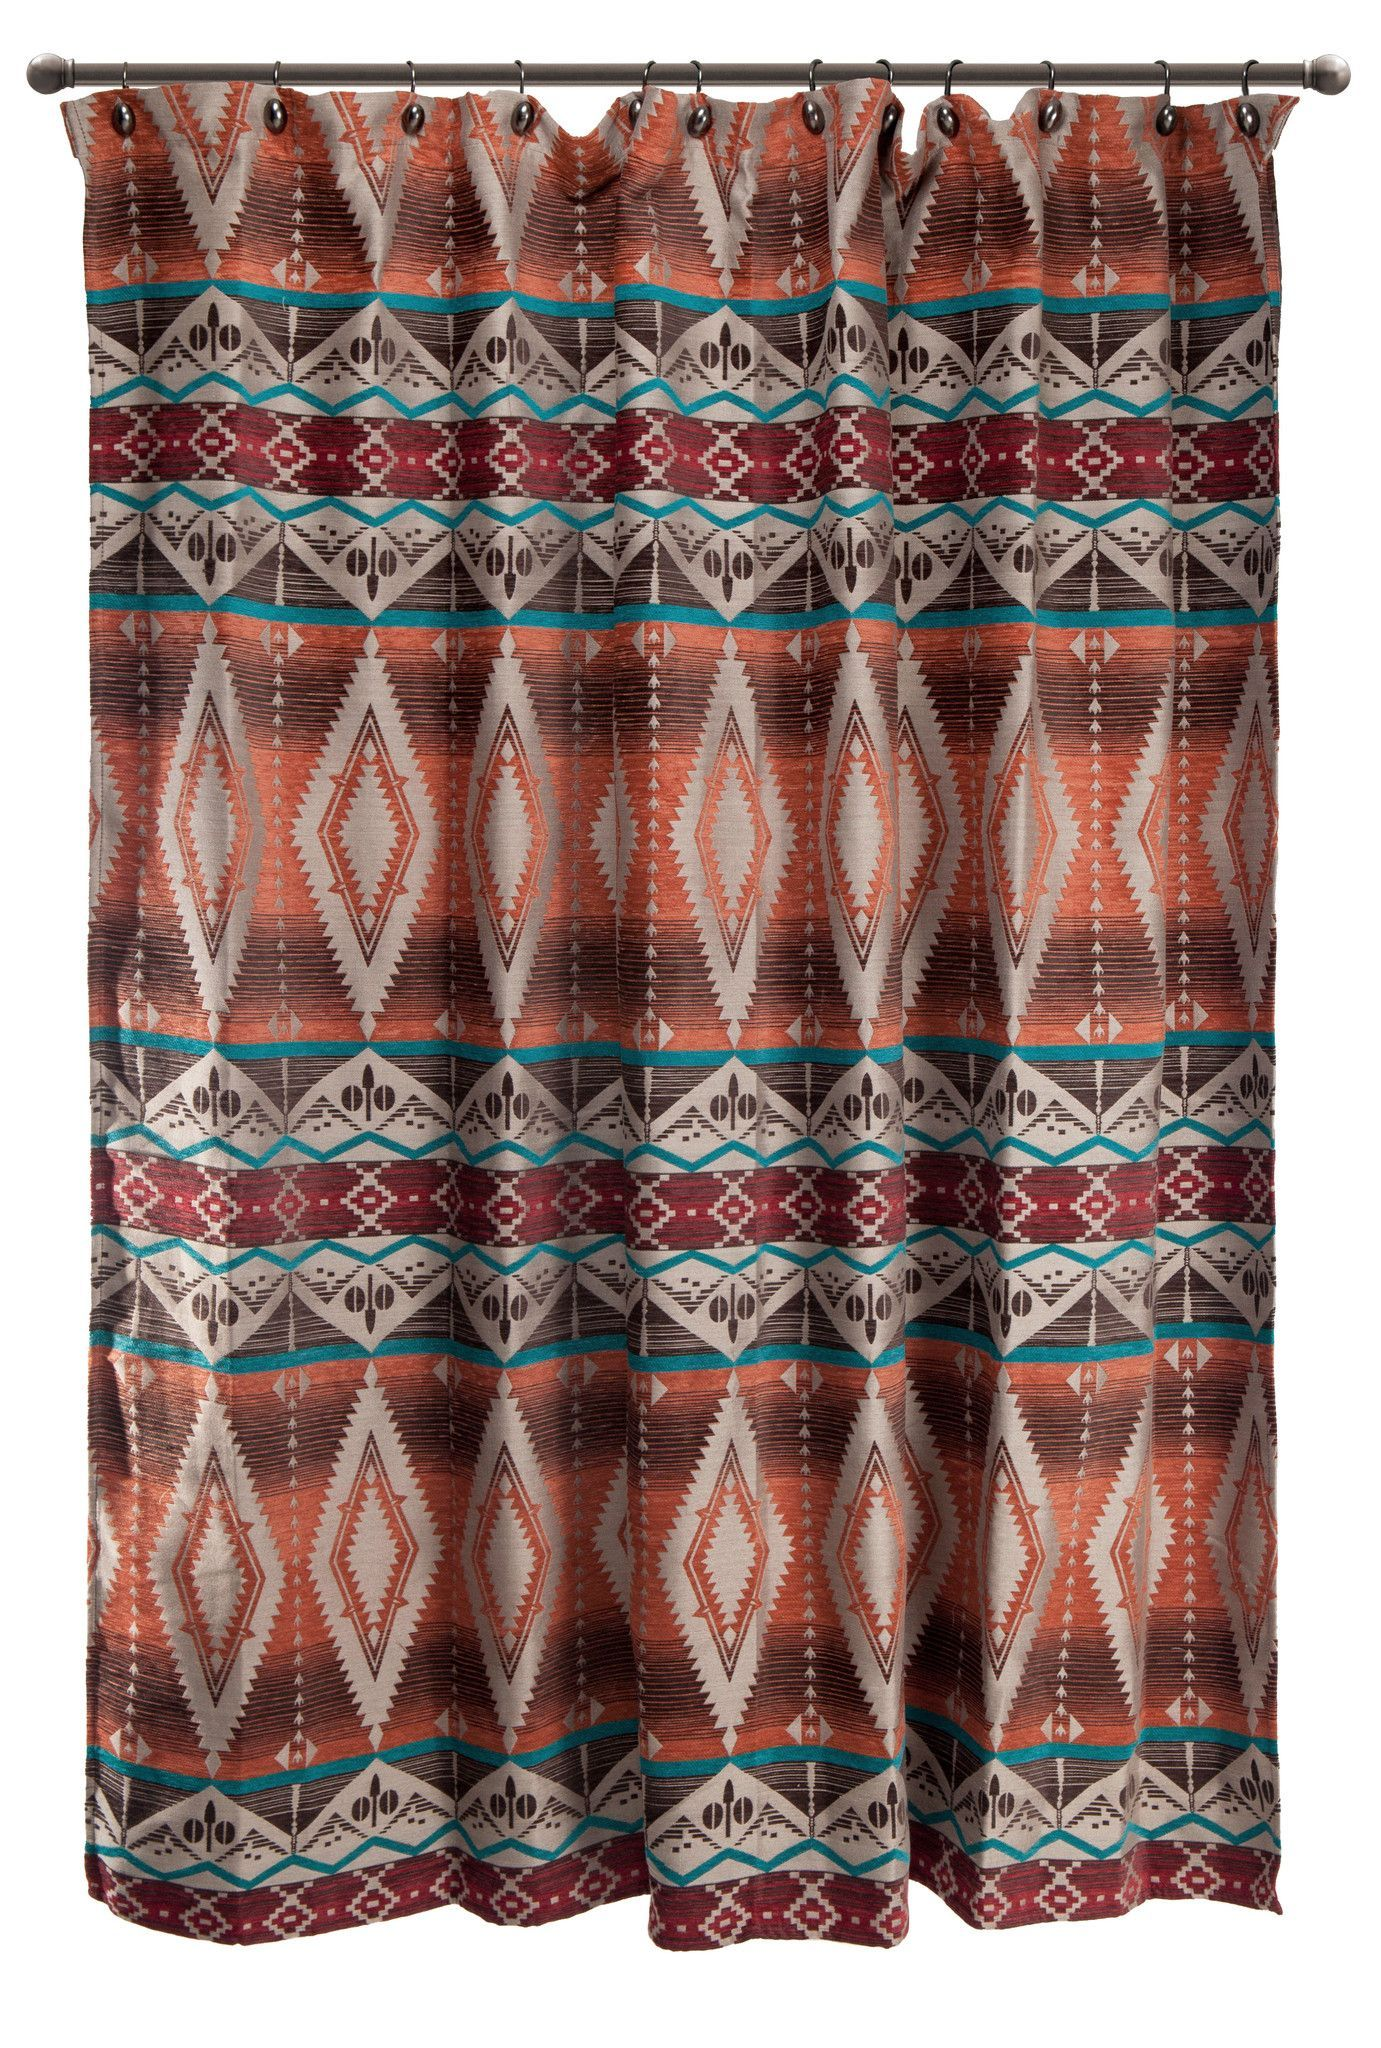 Mojave Sunset Shower Curtain Western Bathrooms Southwestern